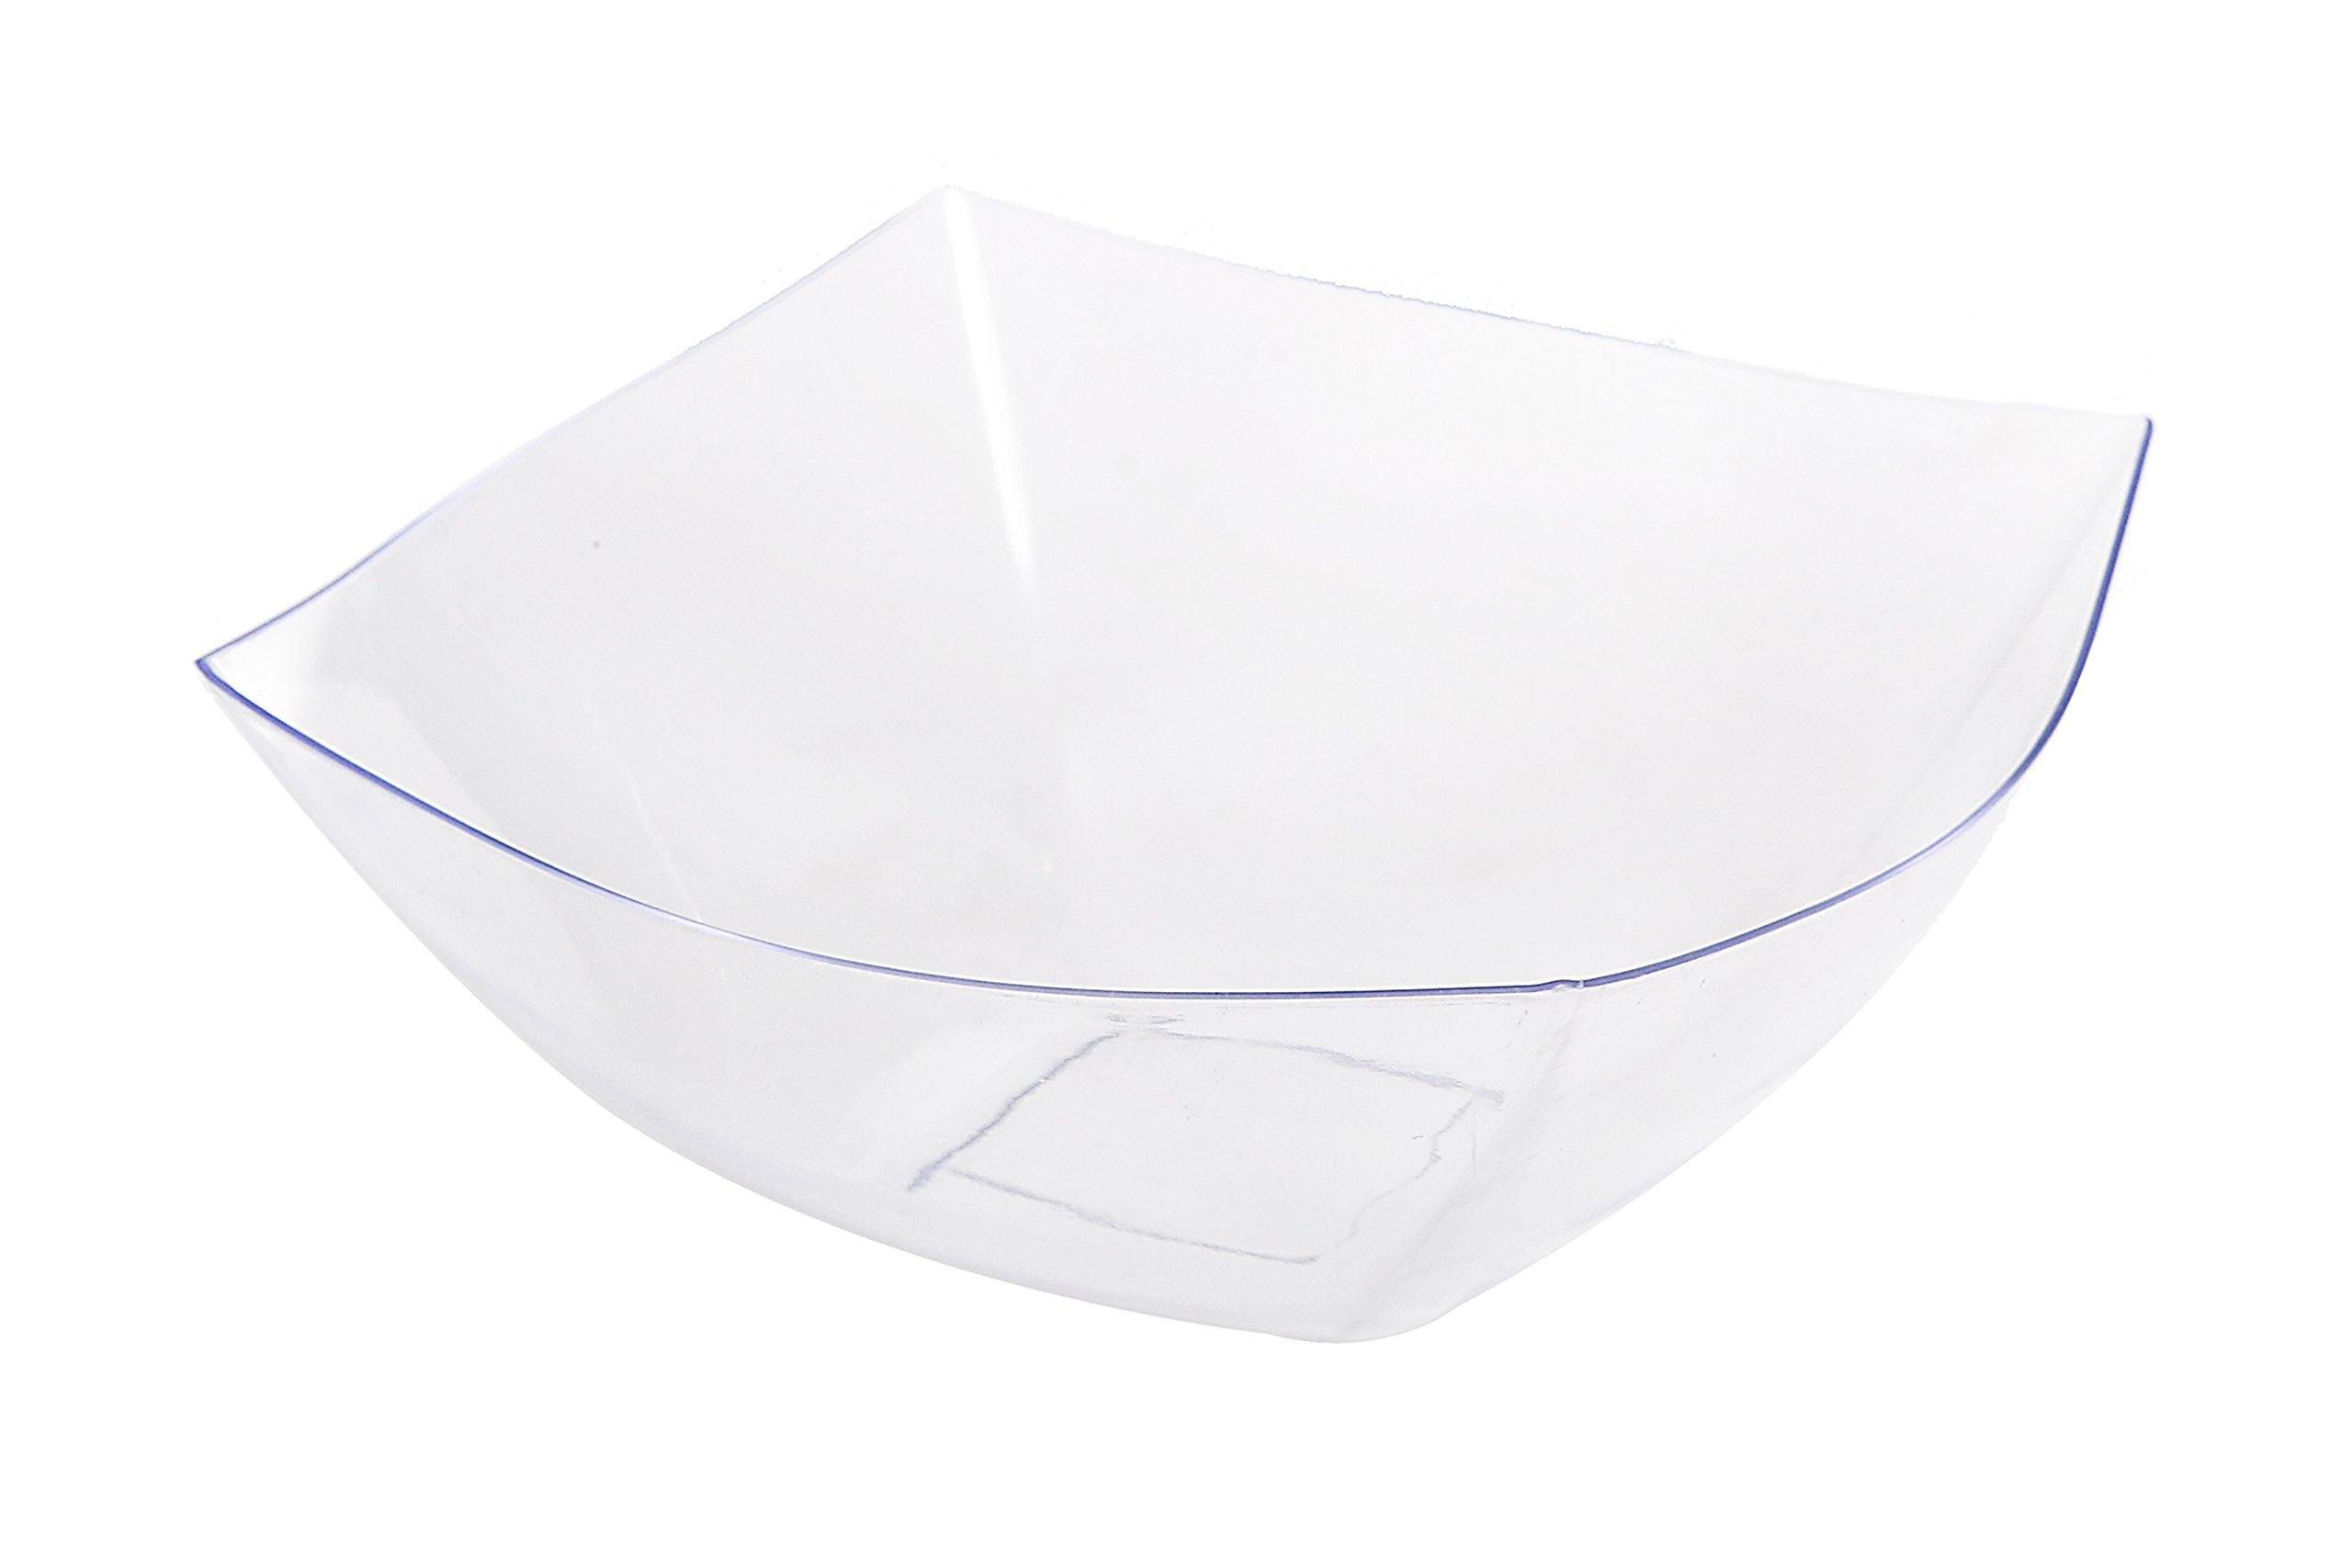 Blue Sky, Square Unbreakable Clear Plastic Serving Bowls, 64 Ounce, Set of 5, Party Snack or Salad Bowl.